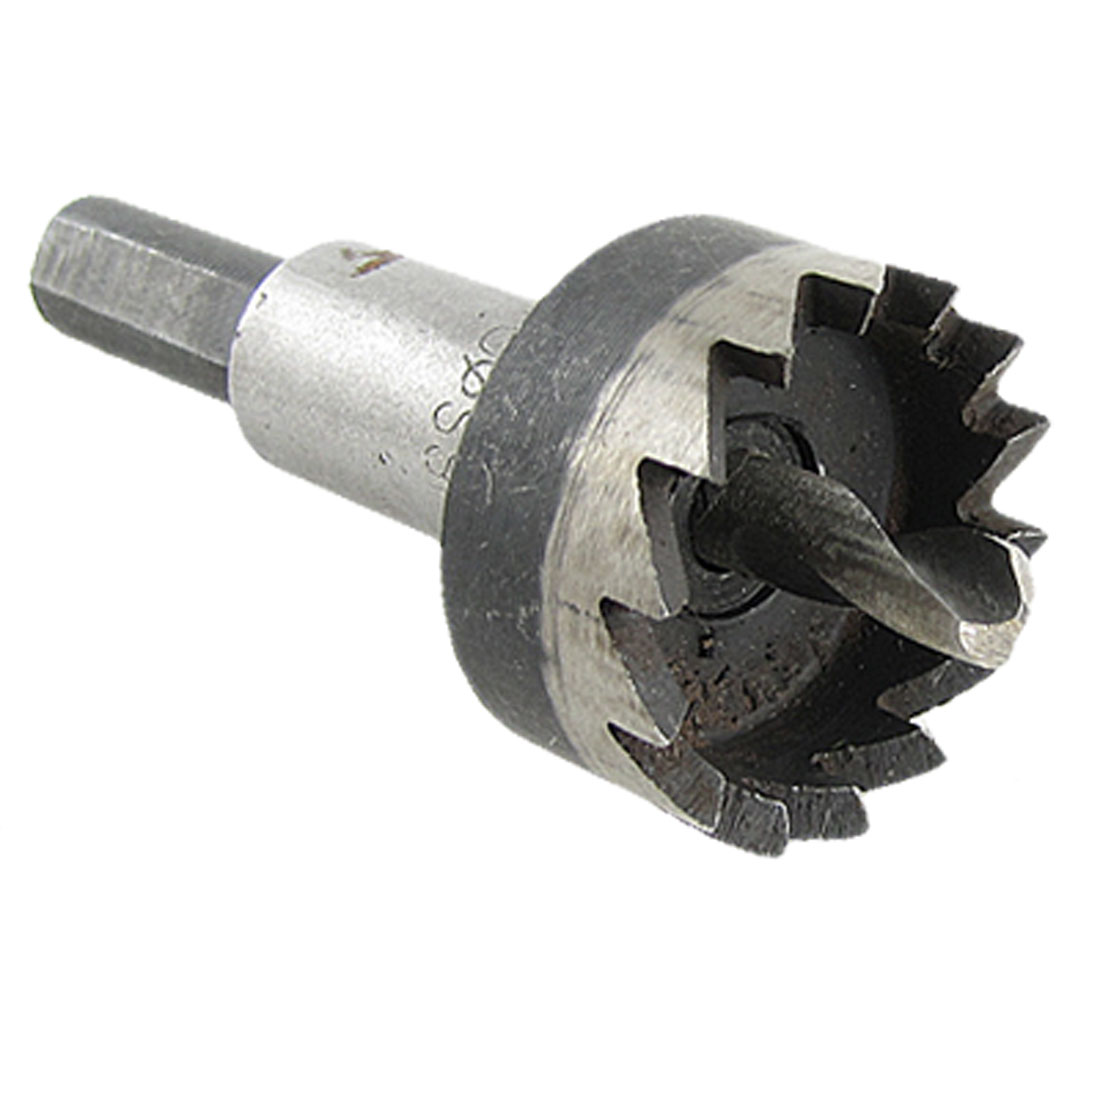 24mm Cutting Diameter High Speed Steel Hole Saw for Metal